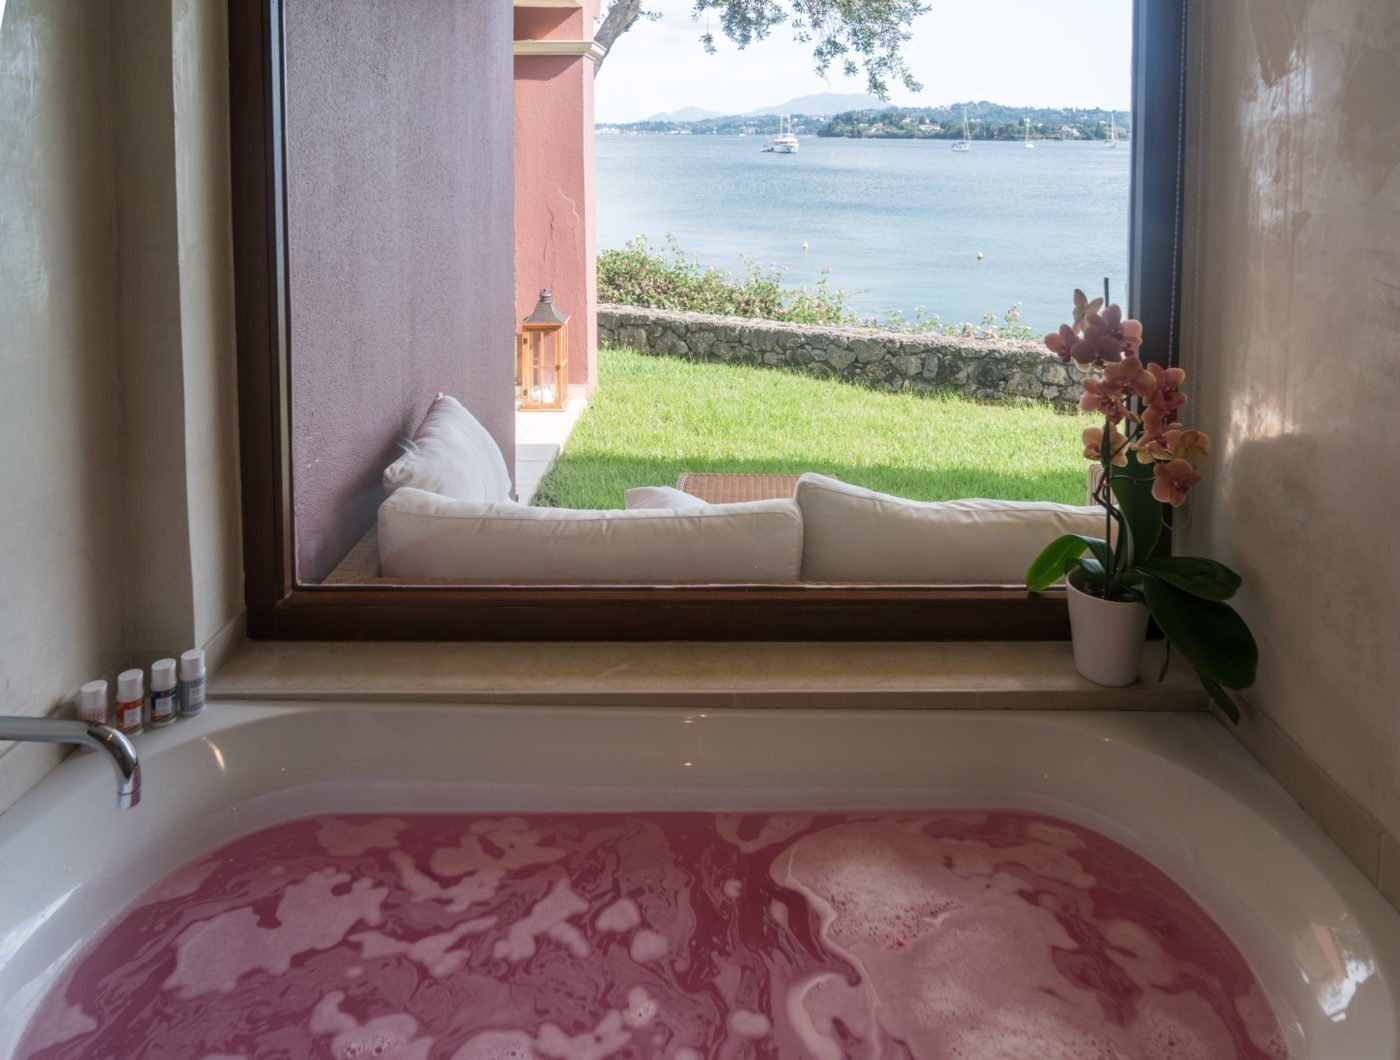 Bath bomb by Lush Cosmetics in the bath of a dream villa at Grecotel Corfu Imperial